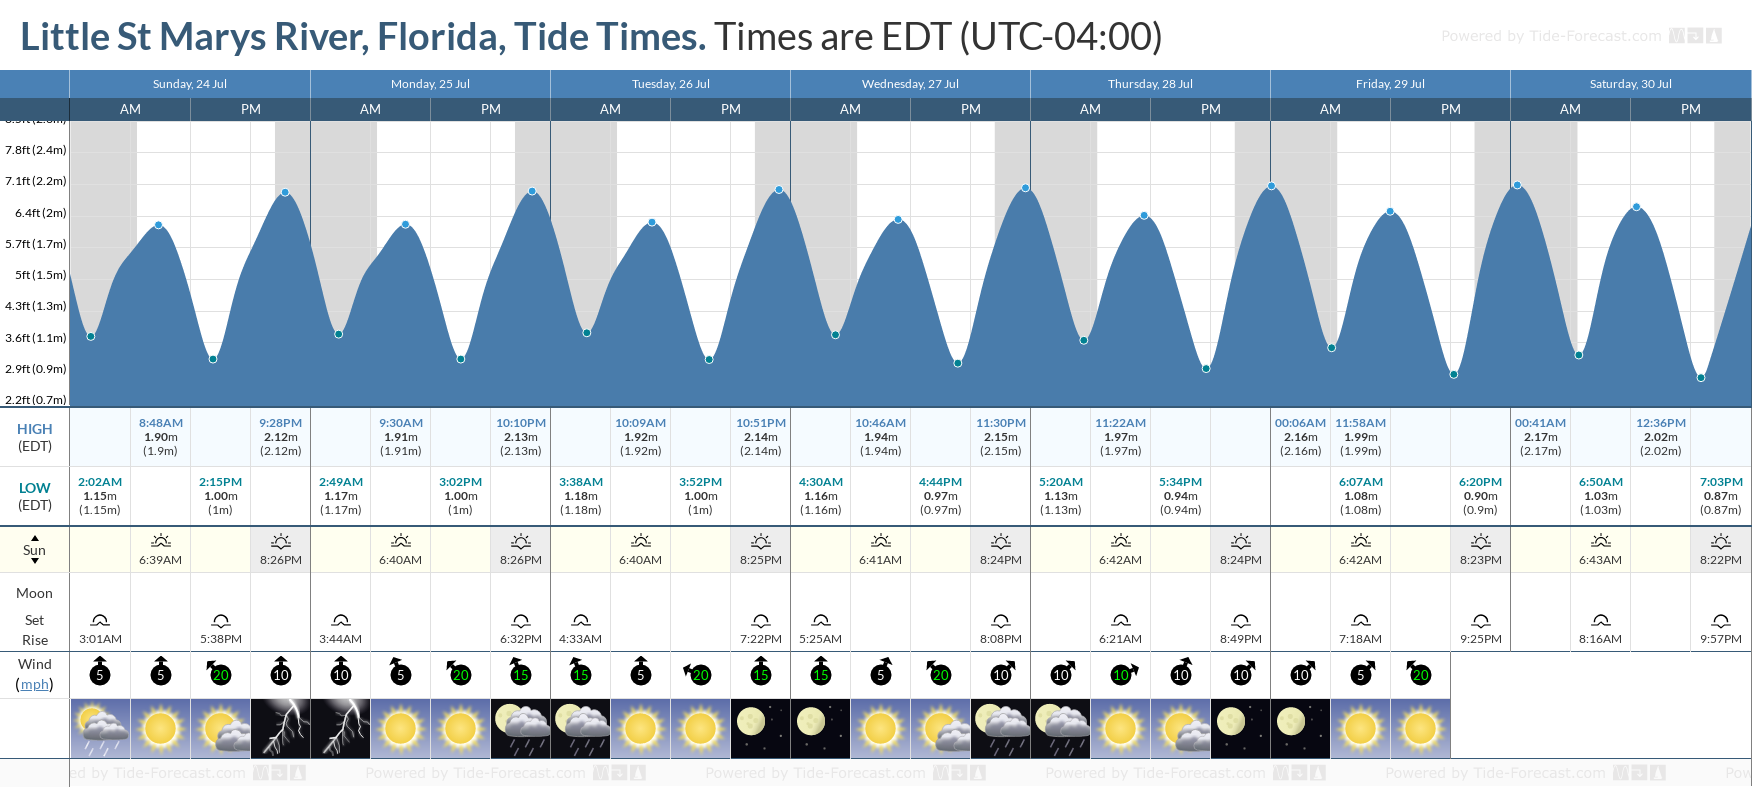 Little St Marys River, Florida Tide Chart including high and low tide tide times for the next 7 days